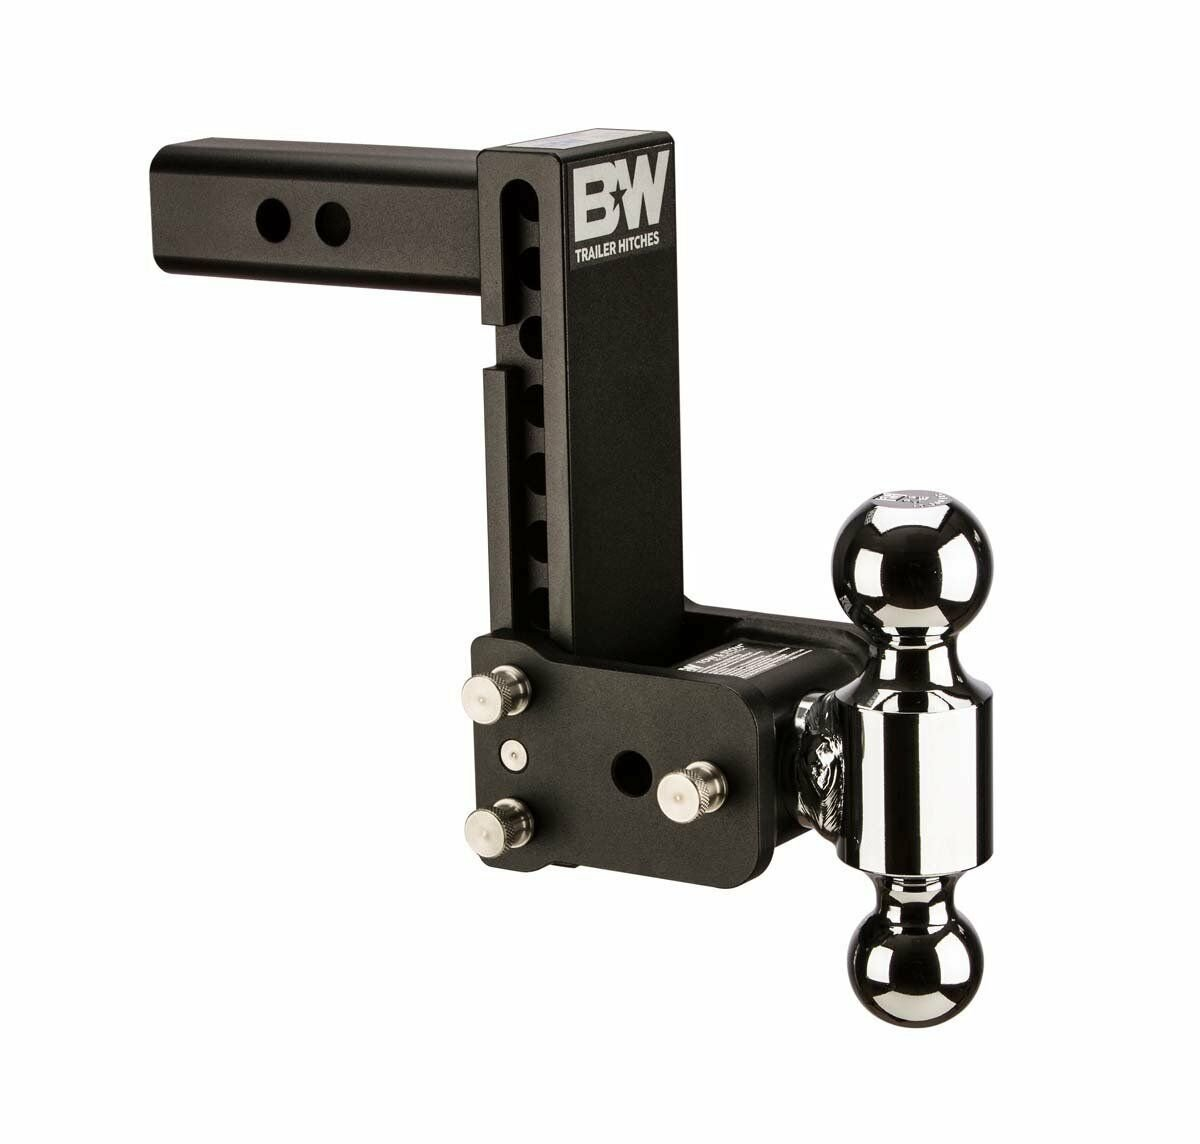 "B&W TS20040B Tow & Stow Double Ball Hitch 2-5/16"" x 2"" Balls with 2.5"" Shank"